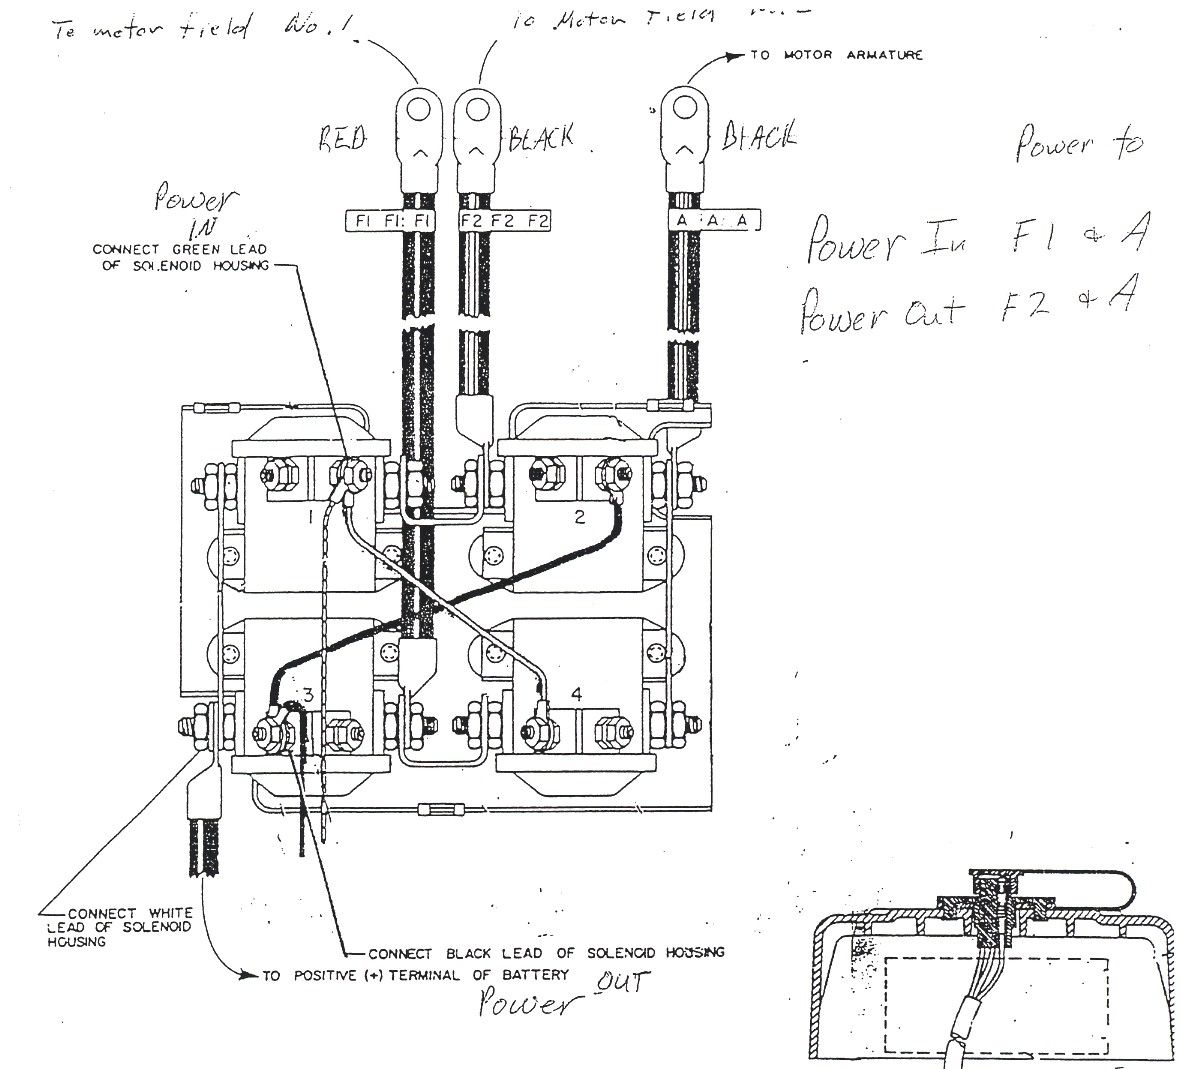 warn m wiring diagram 2500 winch in m8000 warn m8000